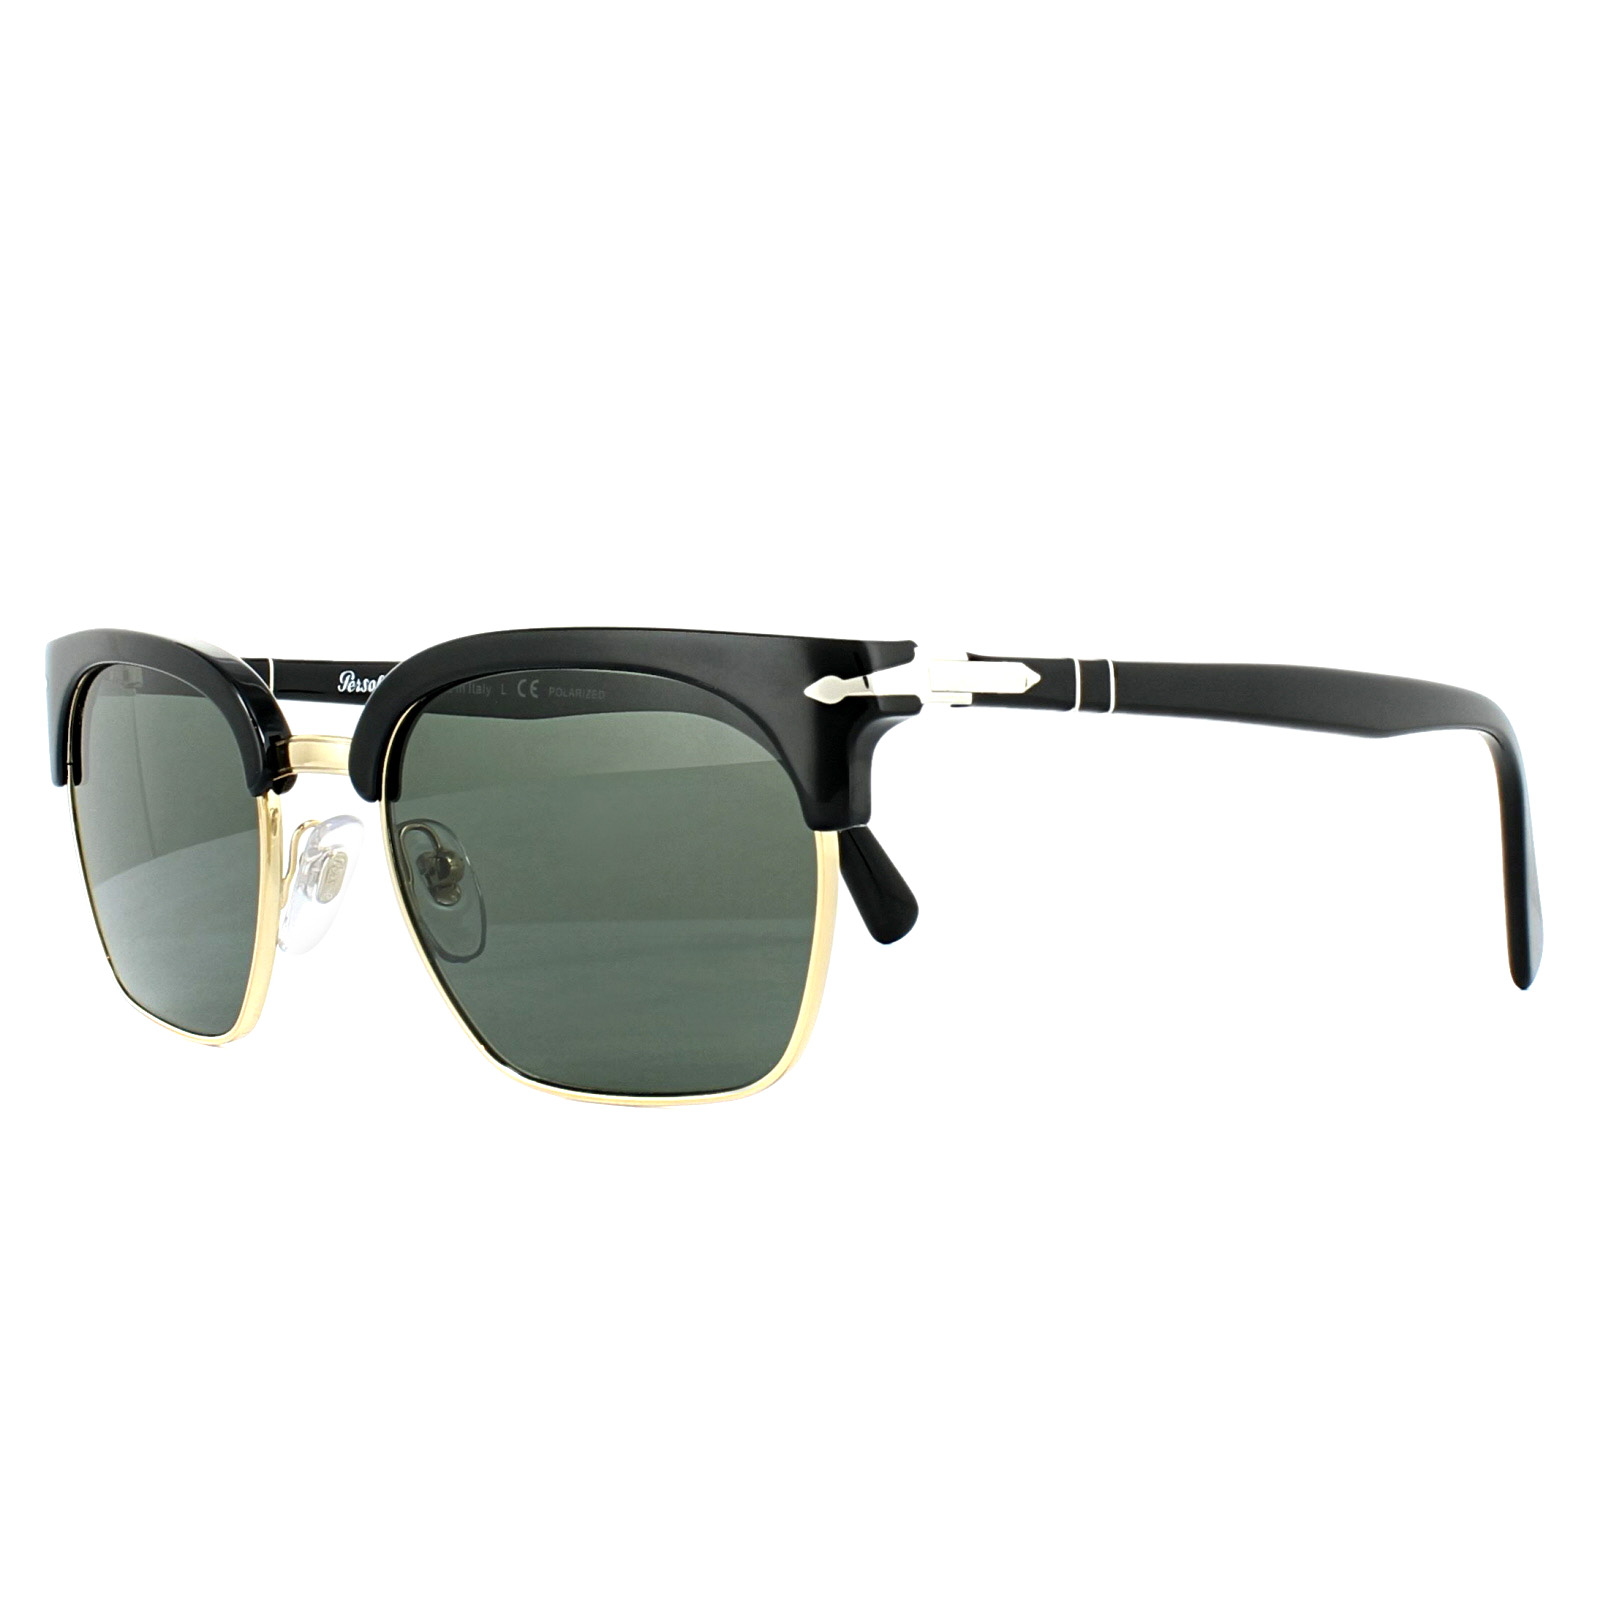 47f0bf1547a6 Persol Sunglasses PO3199S 95/58 Black Green Polarized 8053672870381 ...